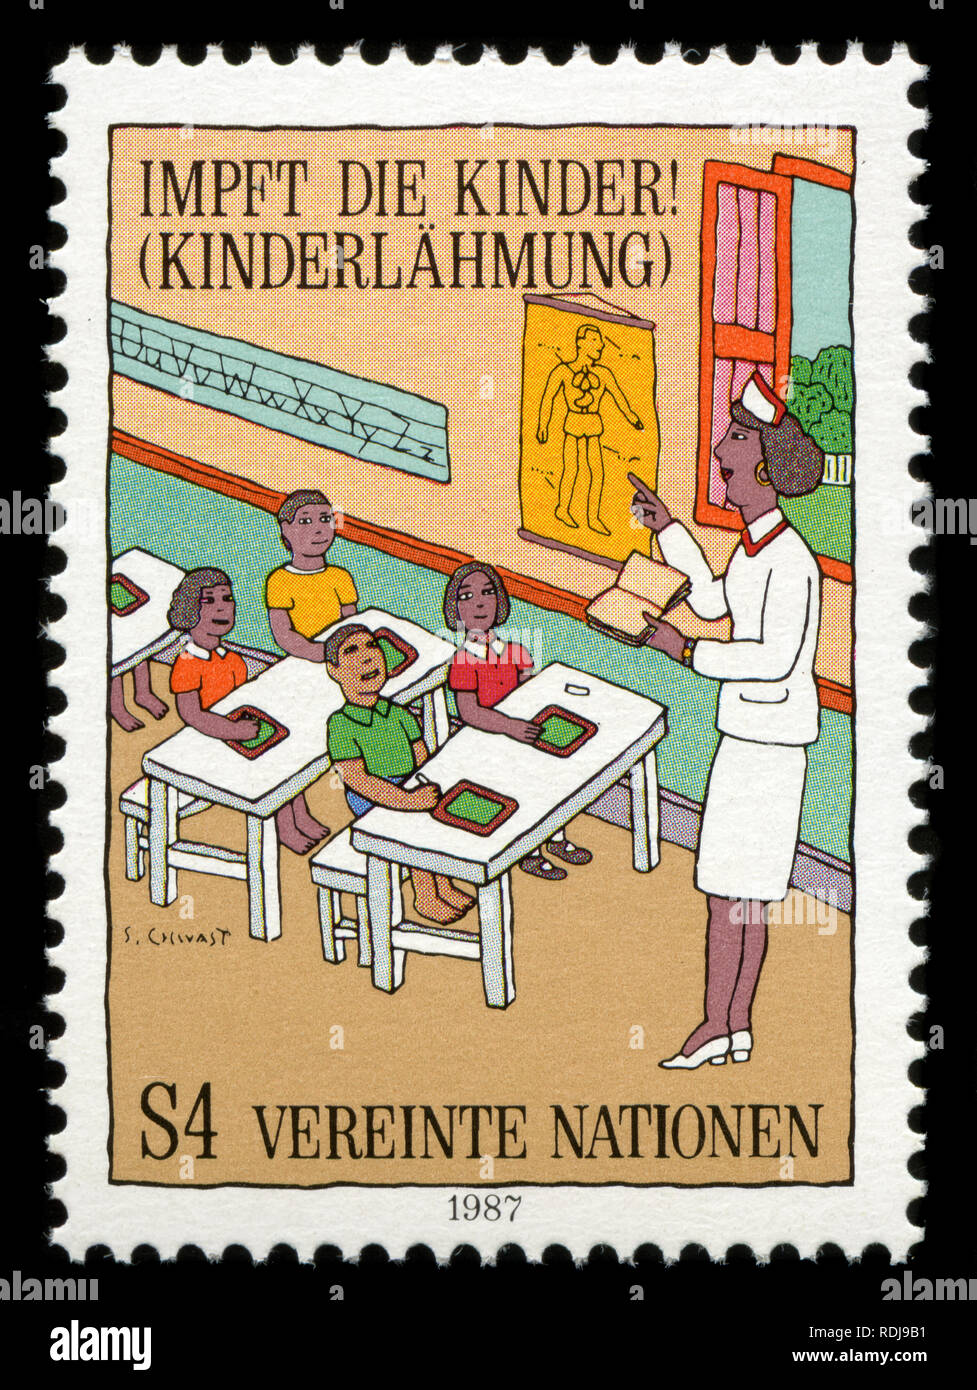 Postage stamp from the United Nations offices in Vienna issued in 1987 - Stock Image